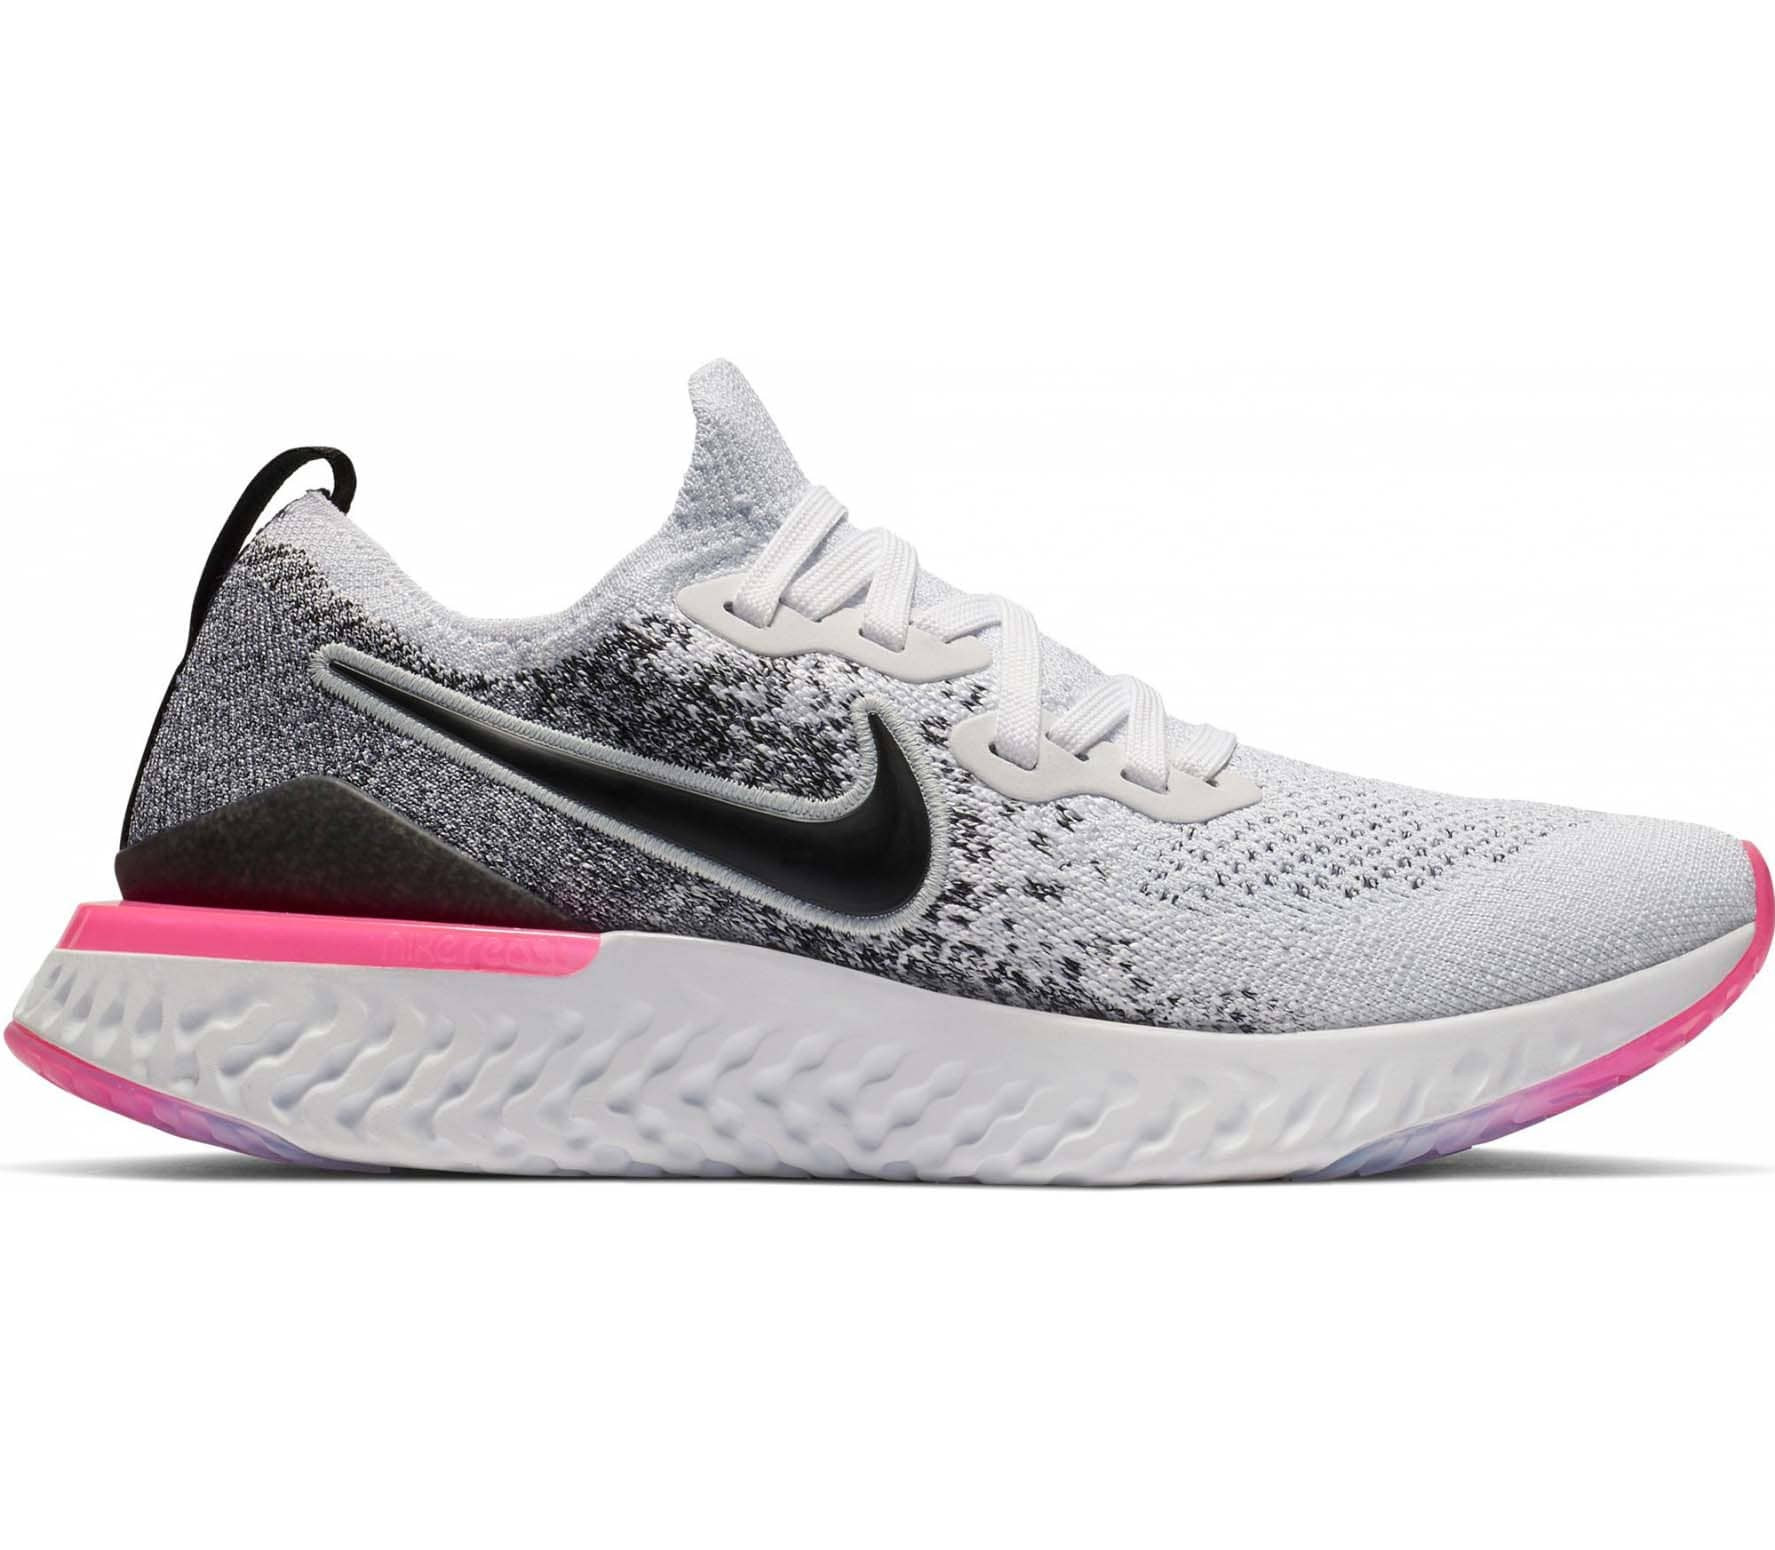 on sale 06e5c d32f4 Nike - Epic React Flyknit 2 Damen Laufschuh (grau)